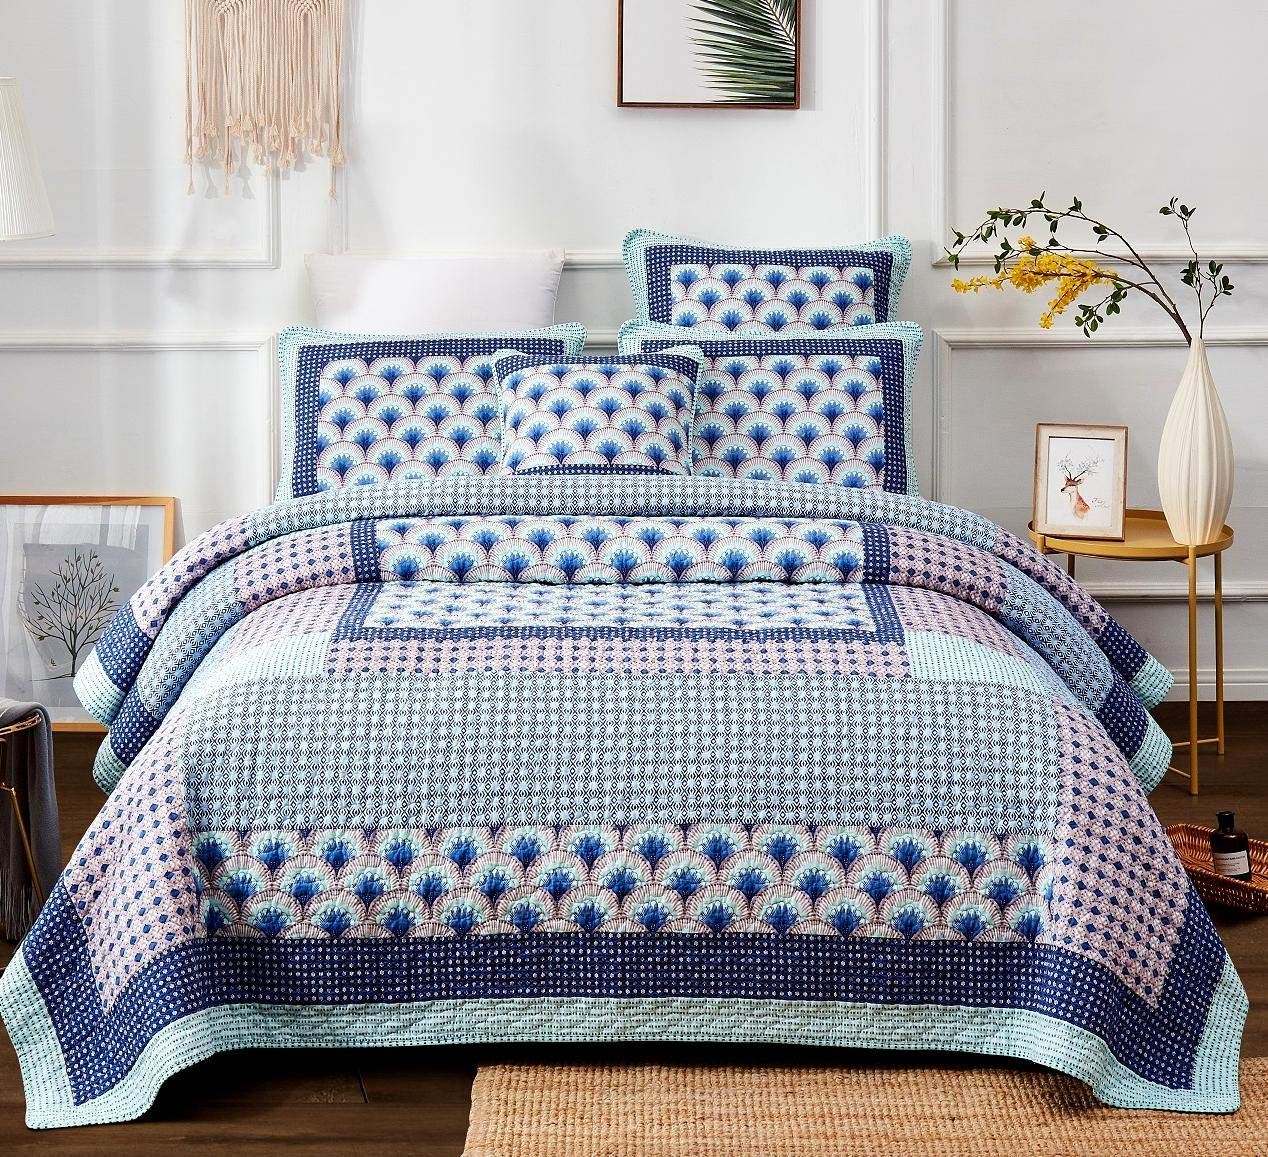 DaDa Bedding Cotton Patchwork Quilt - Fairy Forest Glade Floral Print Bedspread Set, Turquoise Real Patchwork, Cal King, 3-Pieces